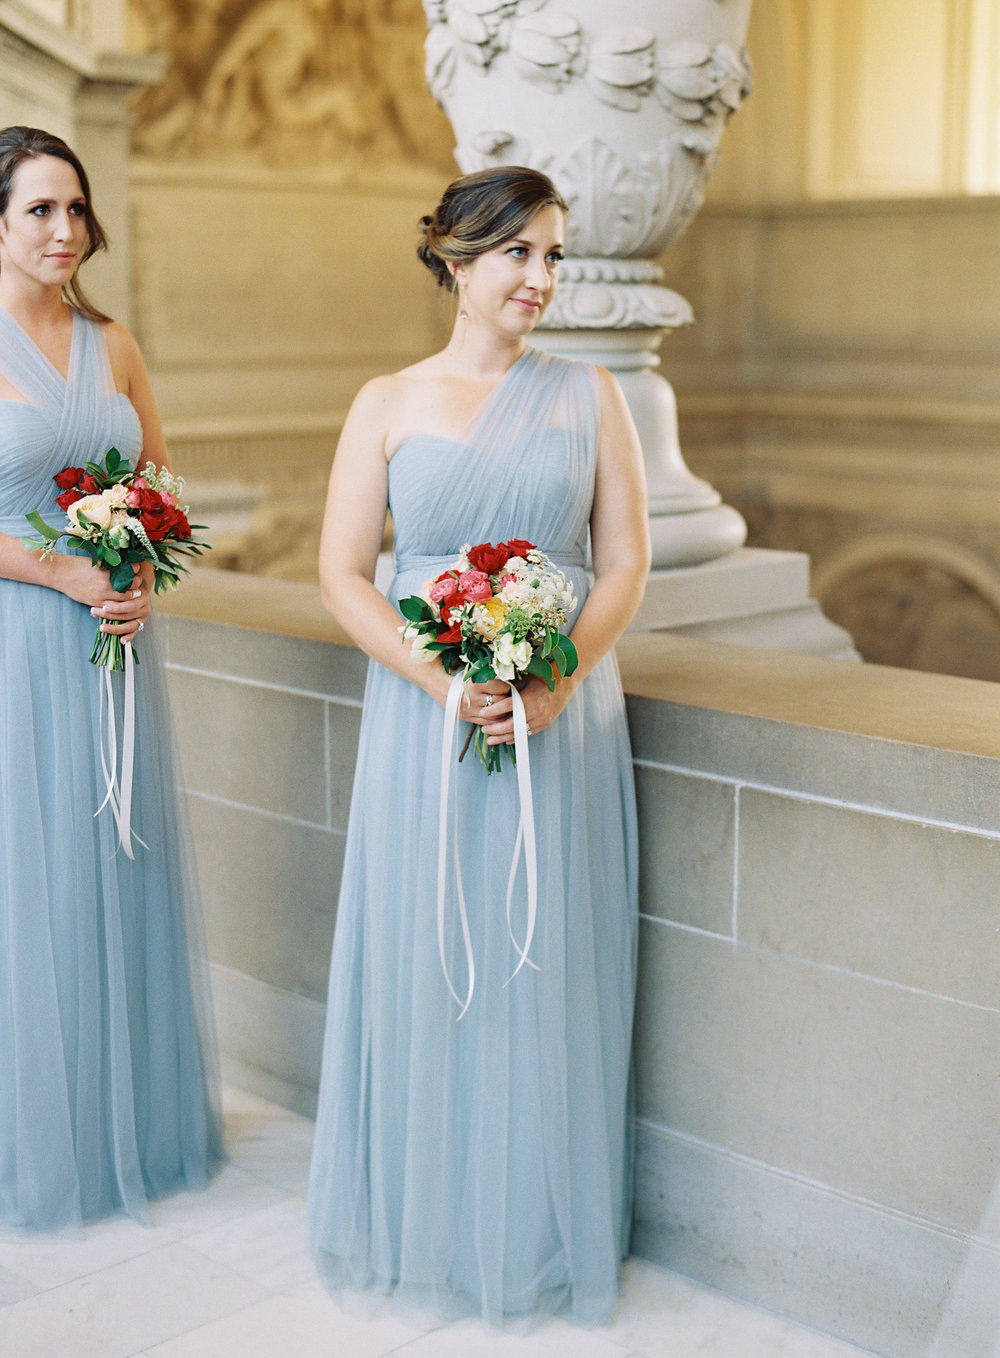 Meghan Mehan Photography - California Wedding Photographer | San Francisco City Hall Wedding 098.jpg